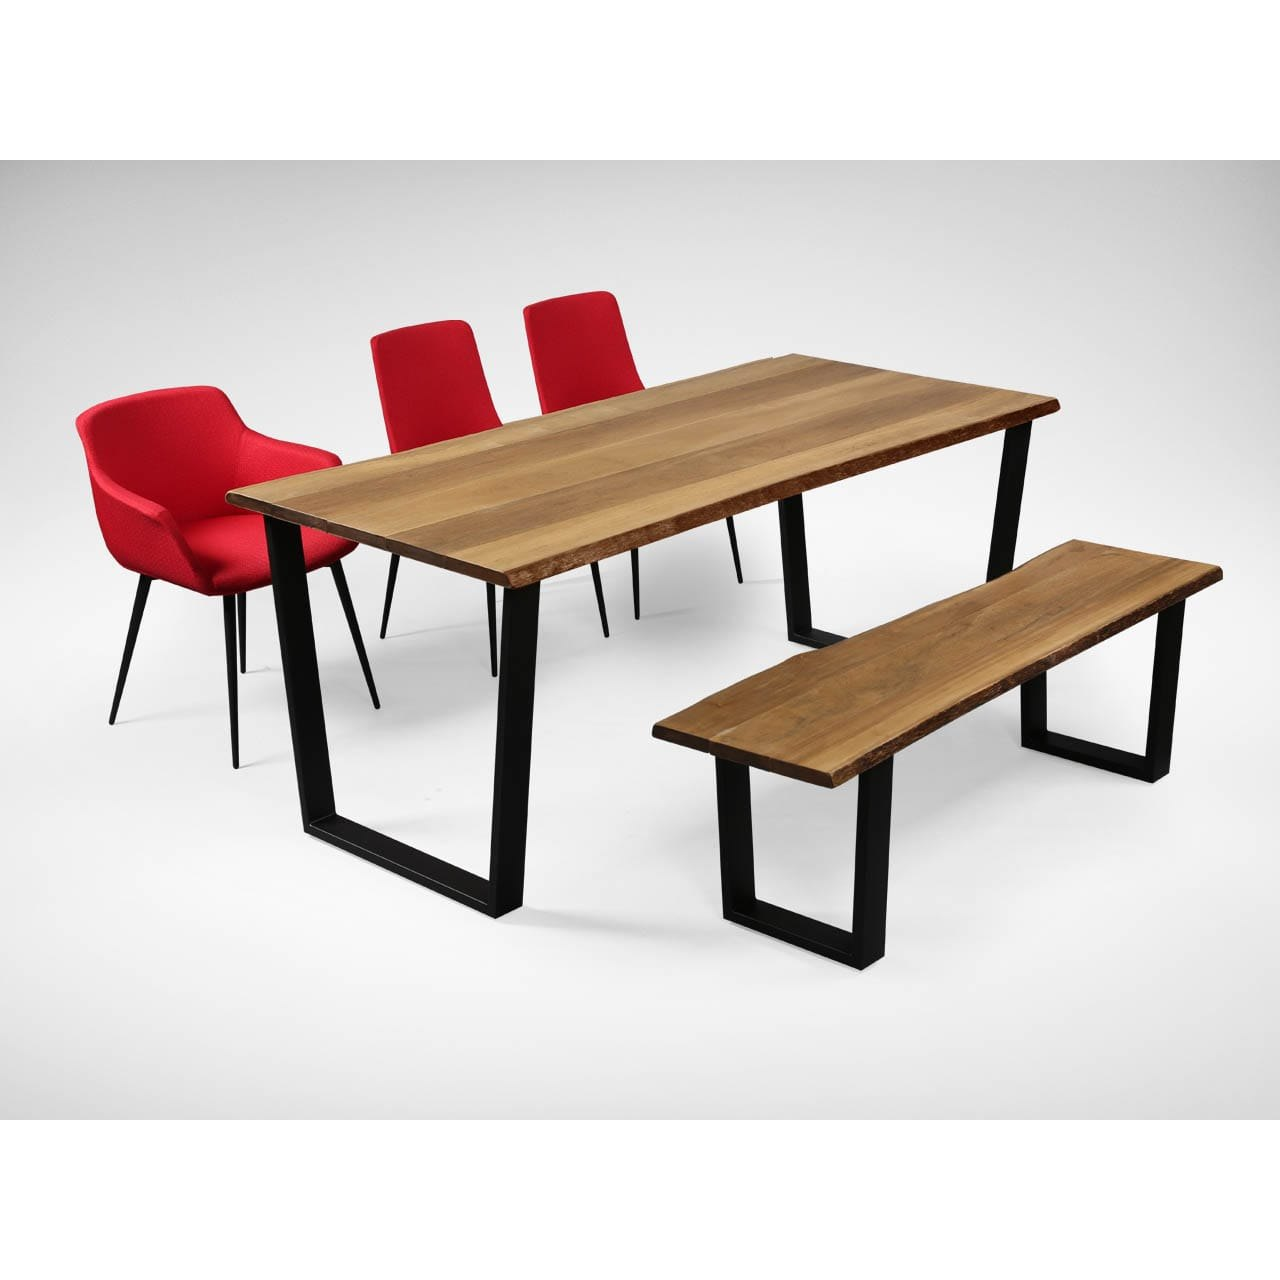 Dion Side Chair Comfort Design The Chair Amp Table People